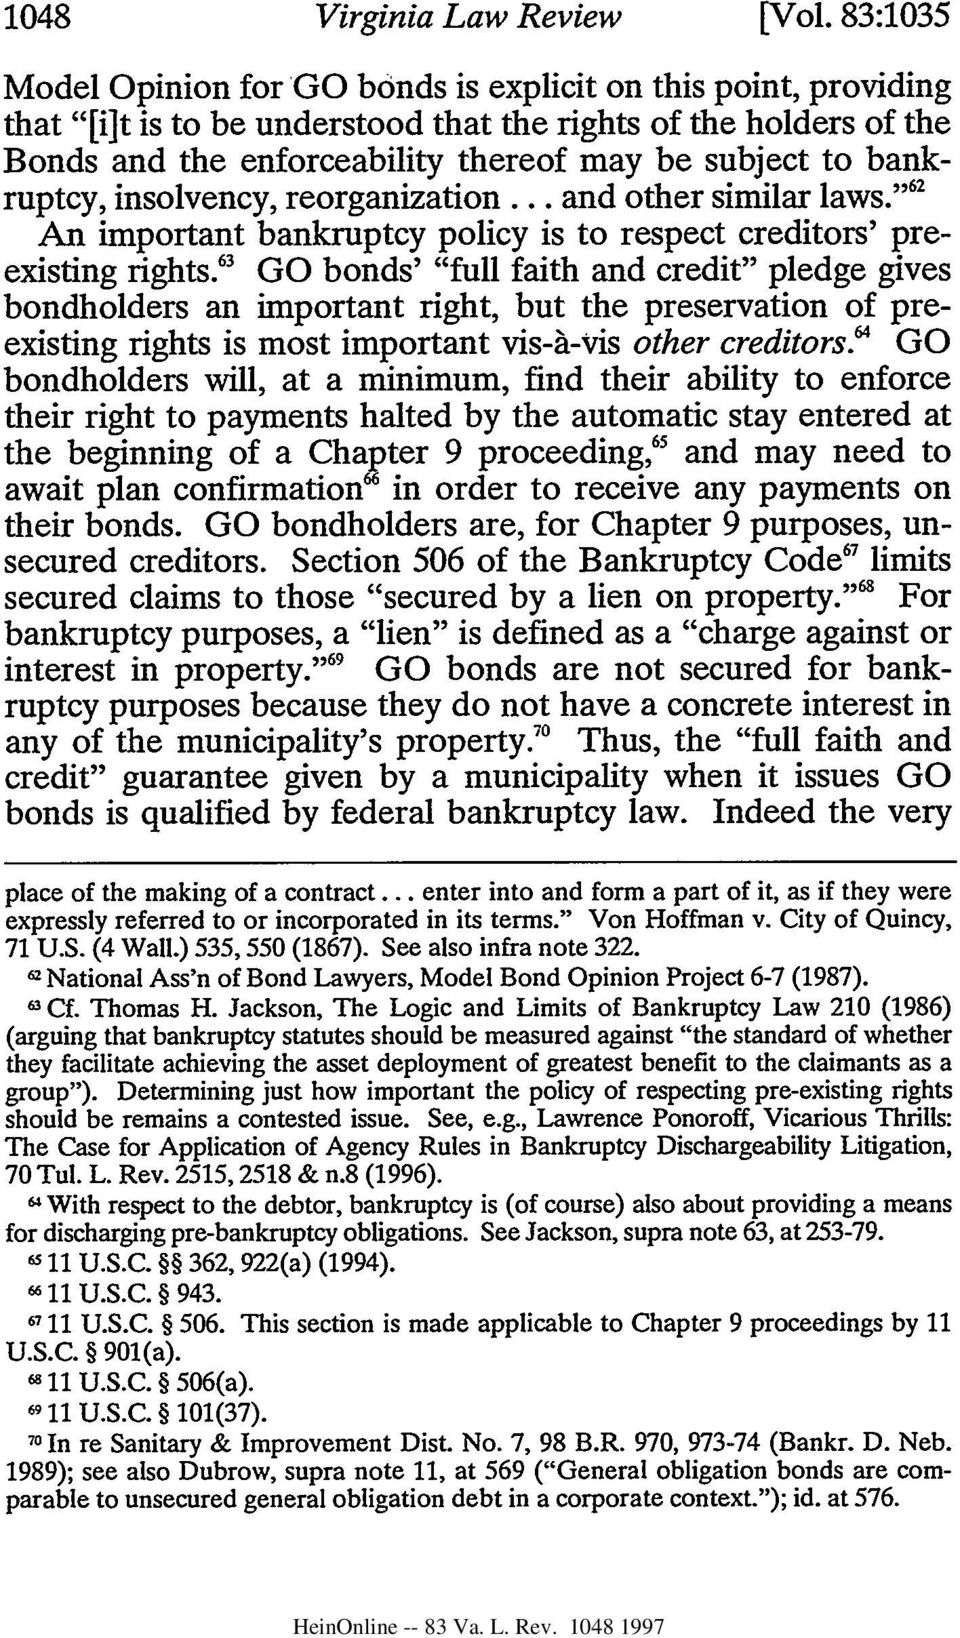 "bankruptcy, insolvency, reorganization... and other similar laws."" '62 An important bankruptcy policy is to respect creditors' preexisting rights."